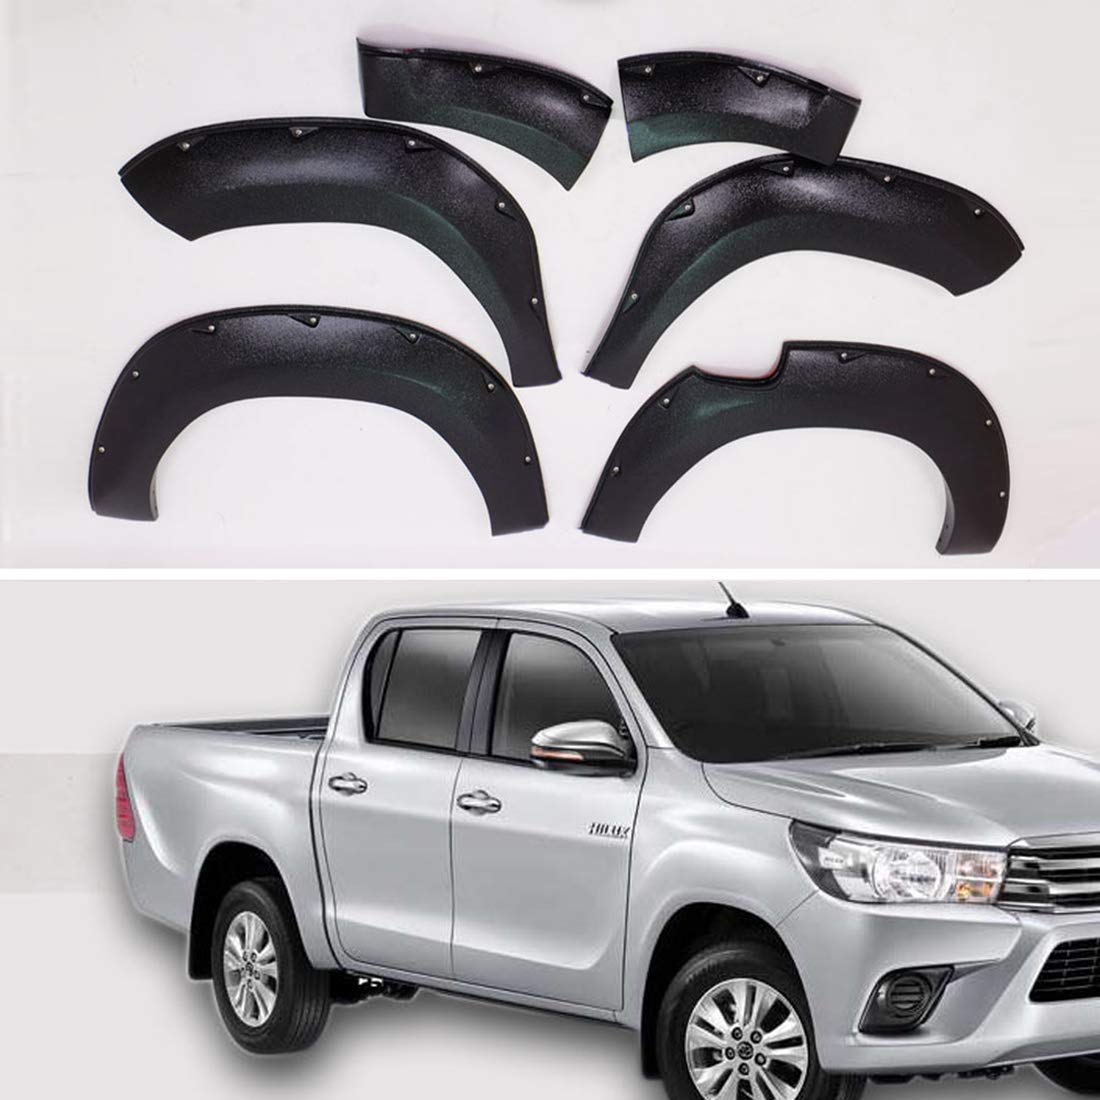 Rhegene New Mud Flaps for Toyota Hilux REVO 4-Door 2015-2016 Adhesive Type Matt Black Fender Protectors Set Kit